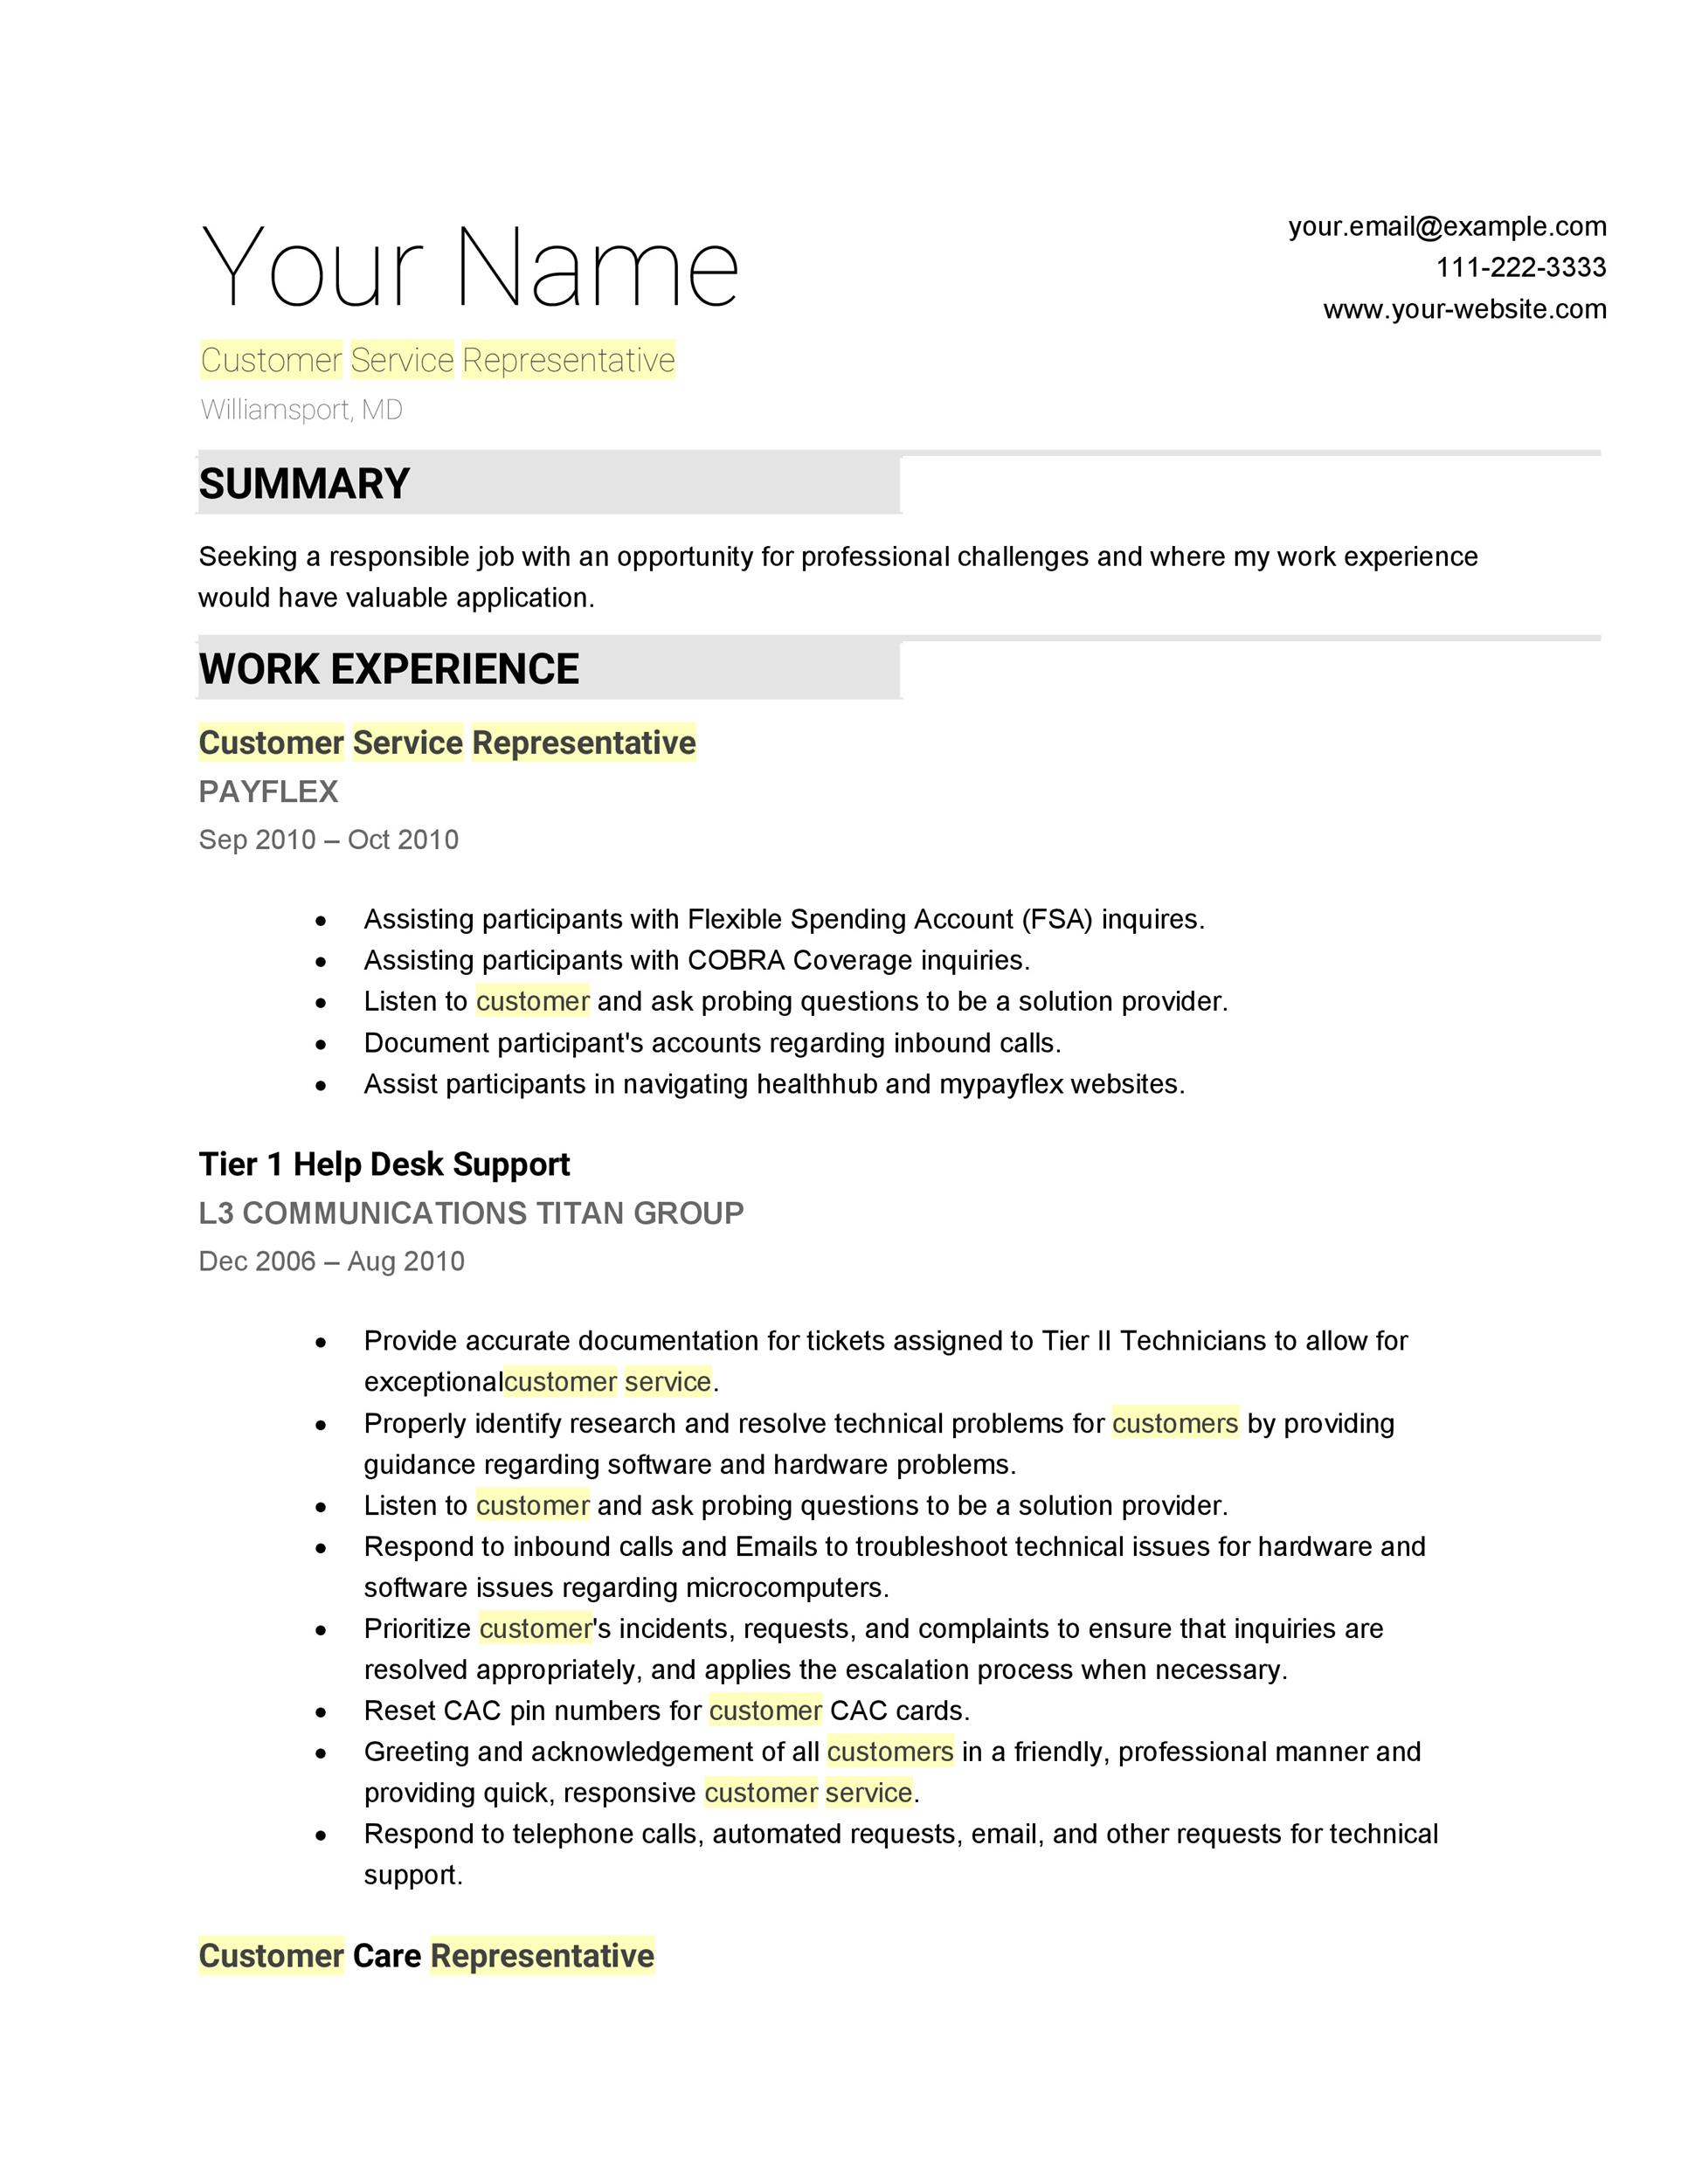 customer service resume templates - Free Resumes Templates